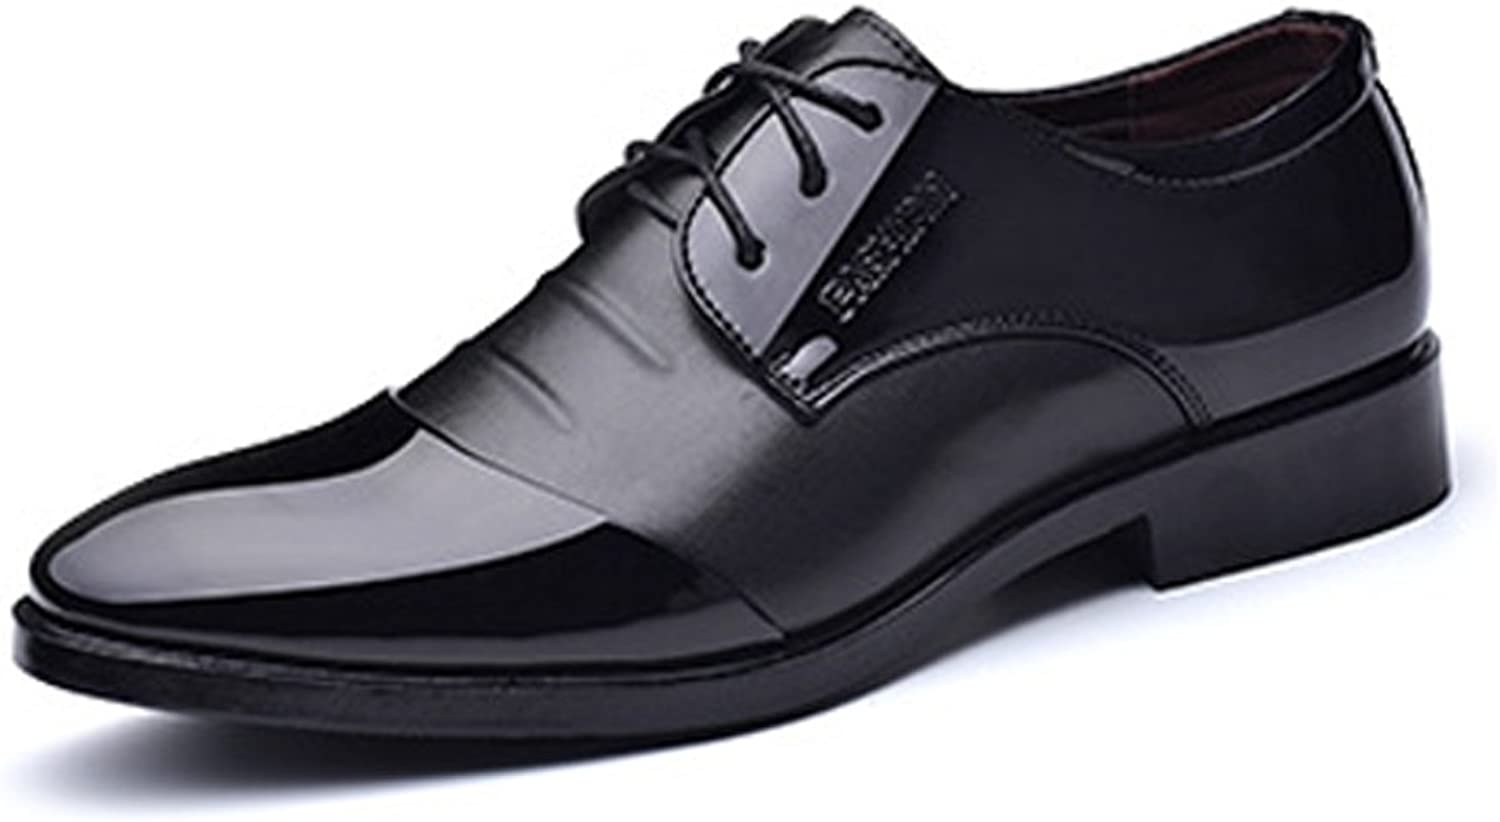 Men's Leather shoes Formal Business shoes Smooth PU Leather Splice Upper Lace Up Breathable Lined Oxfords (color   Black, Size   5.5 UK)